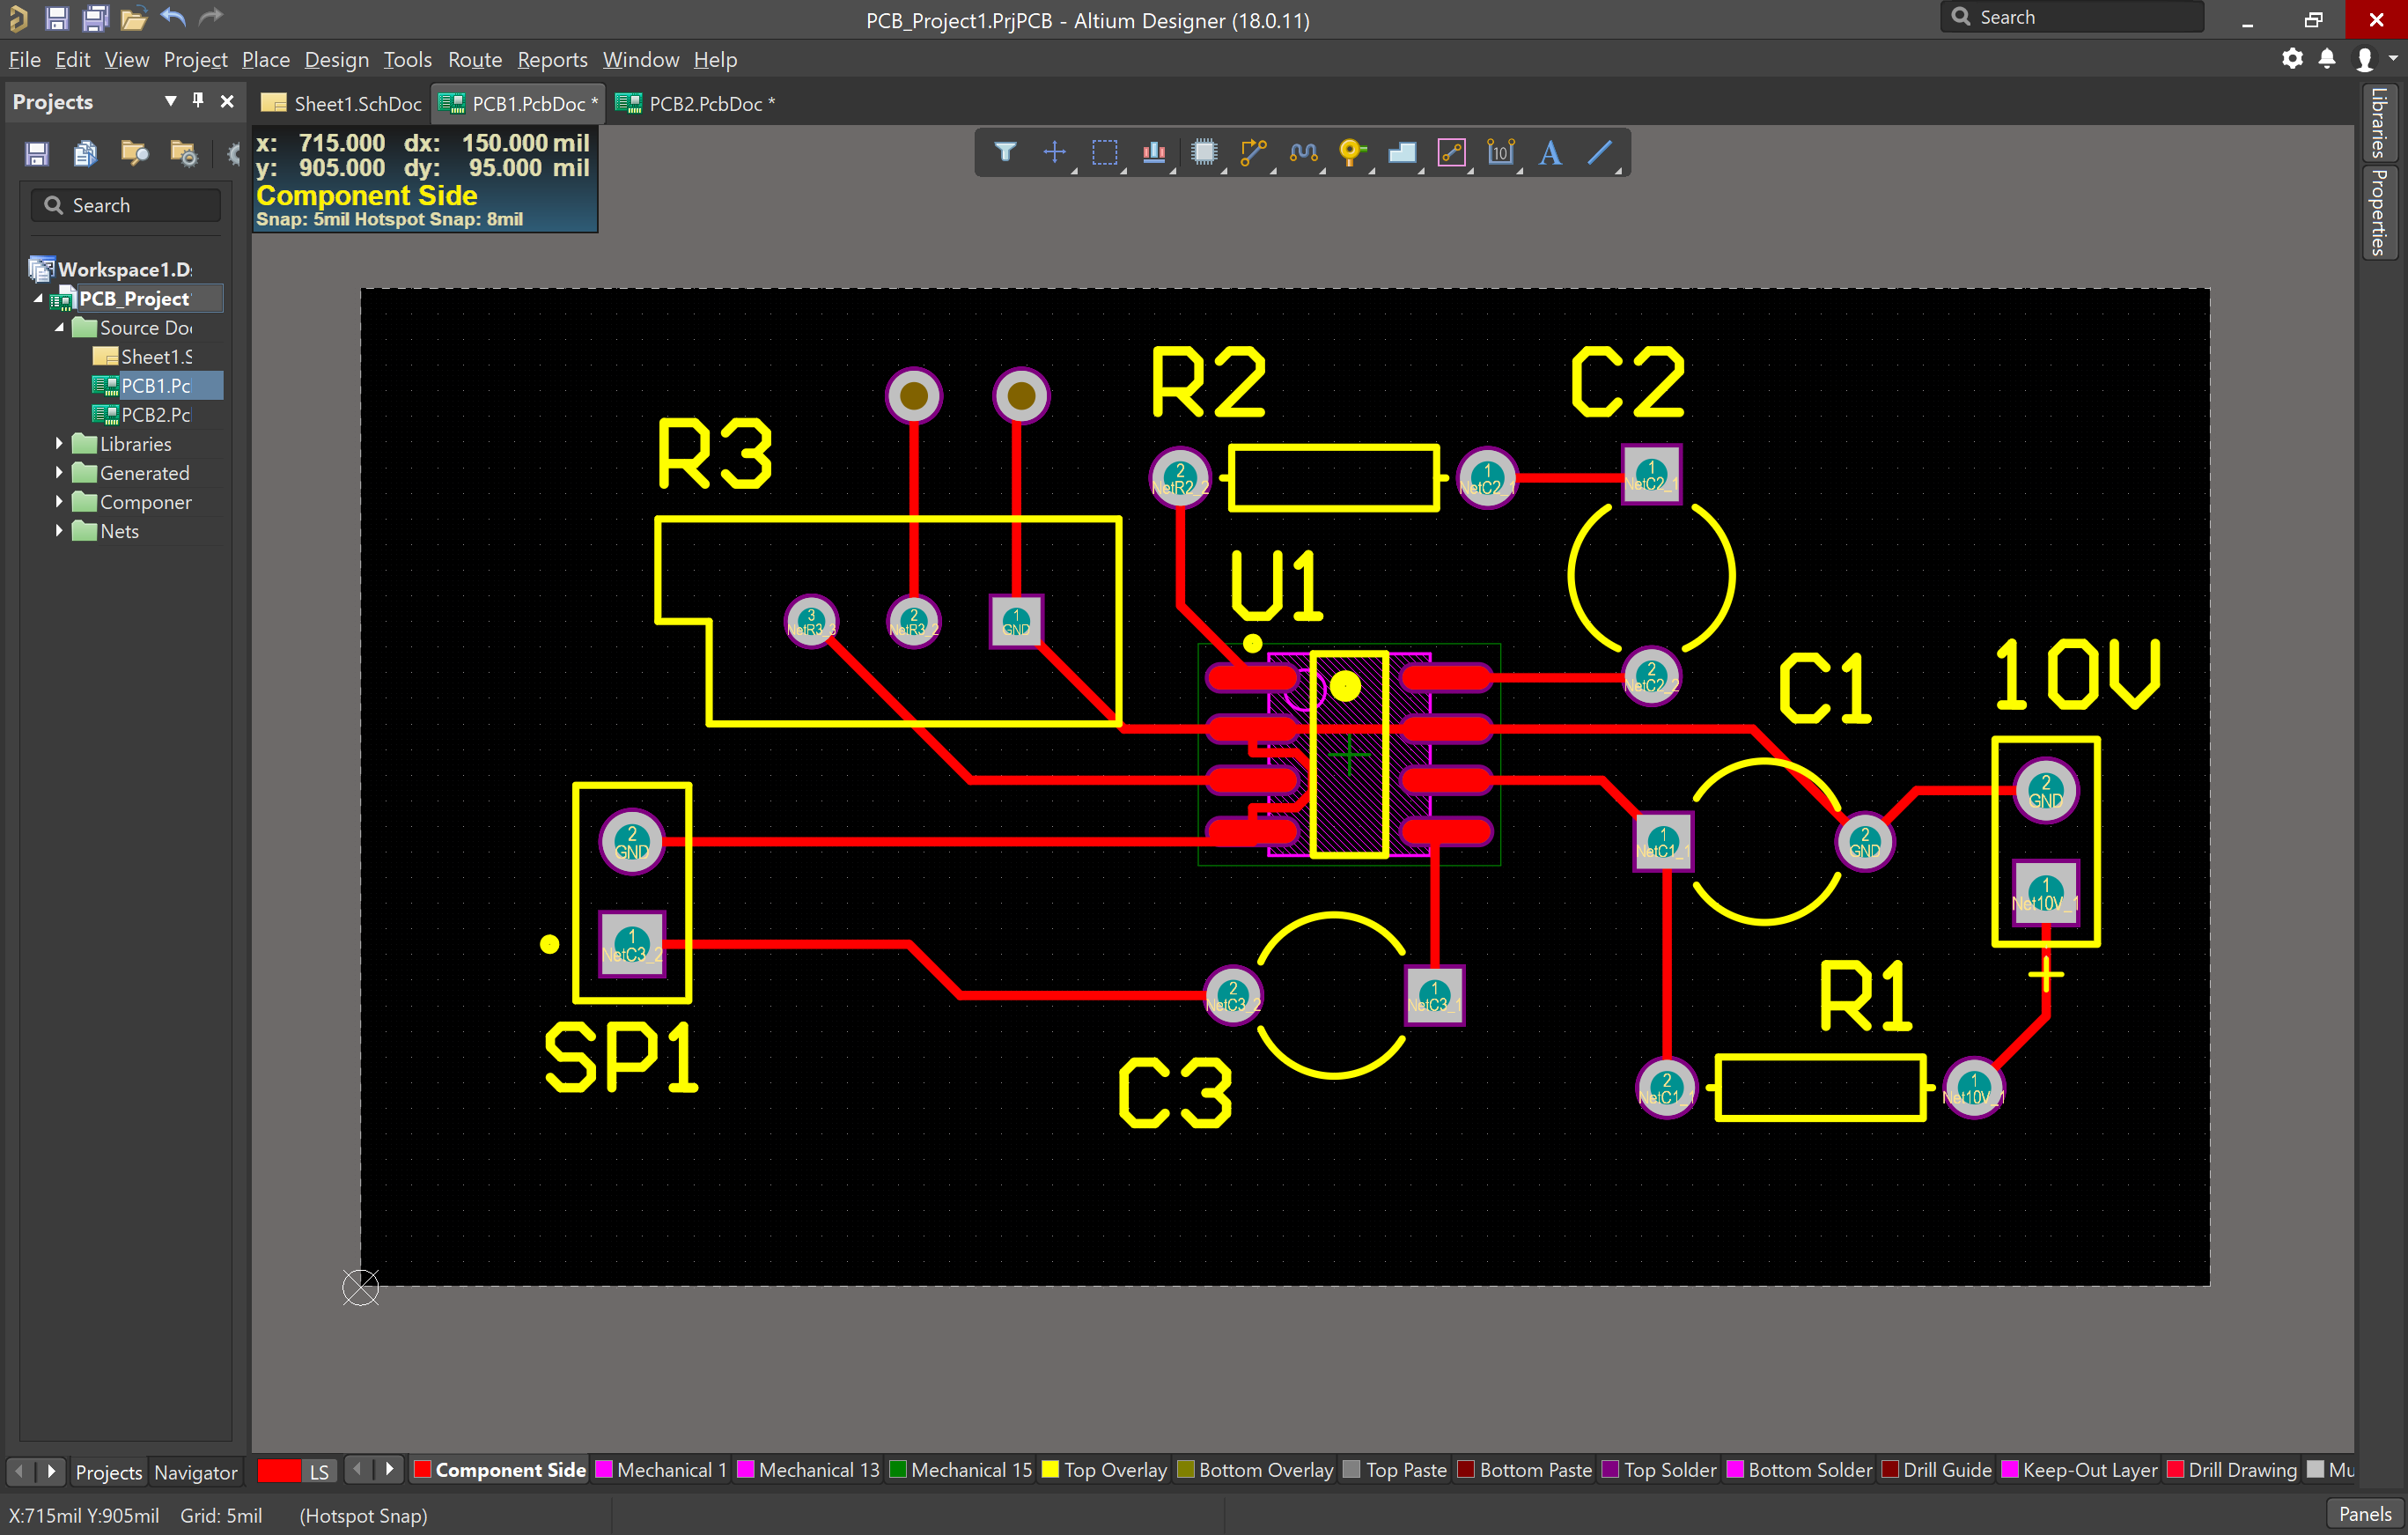 Fully routed and with vias added PCB in Altium Designer